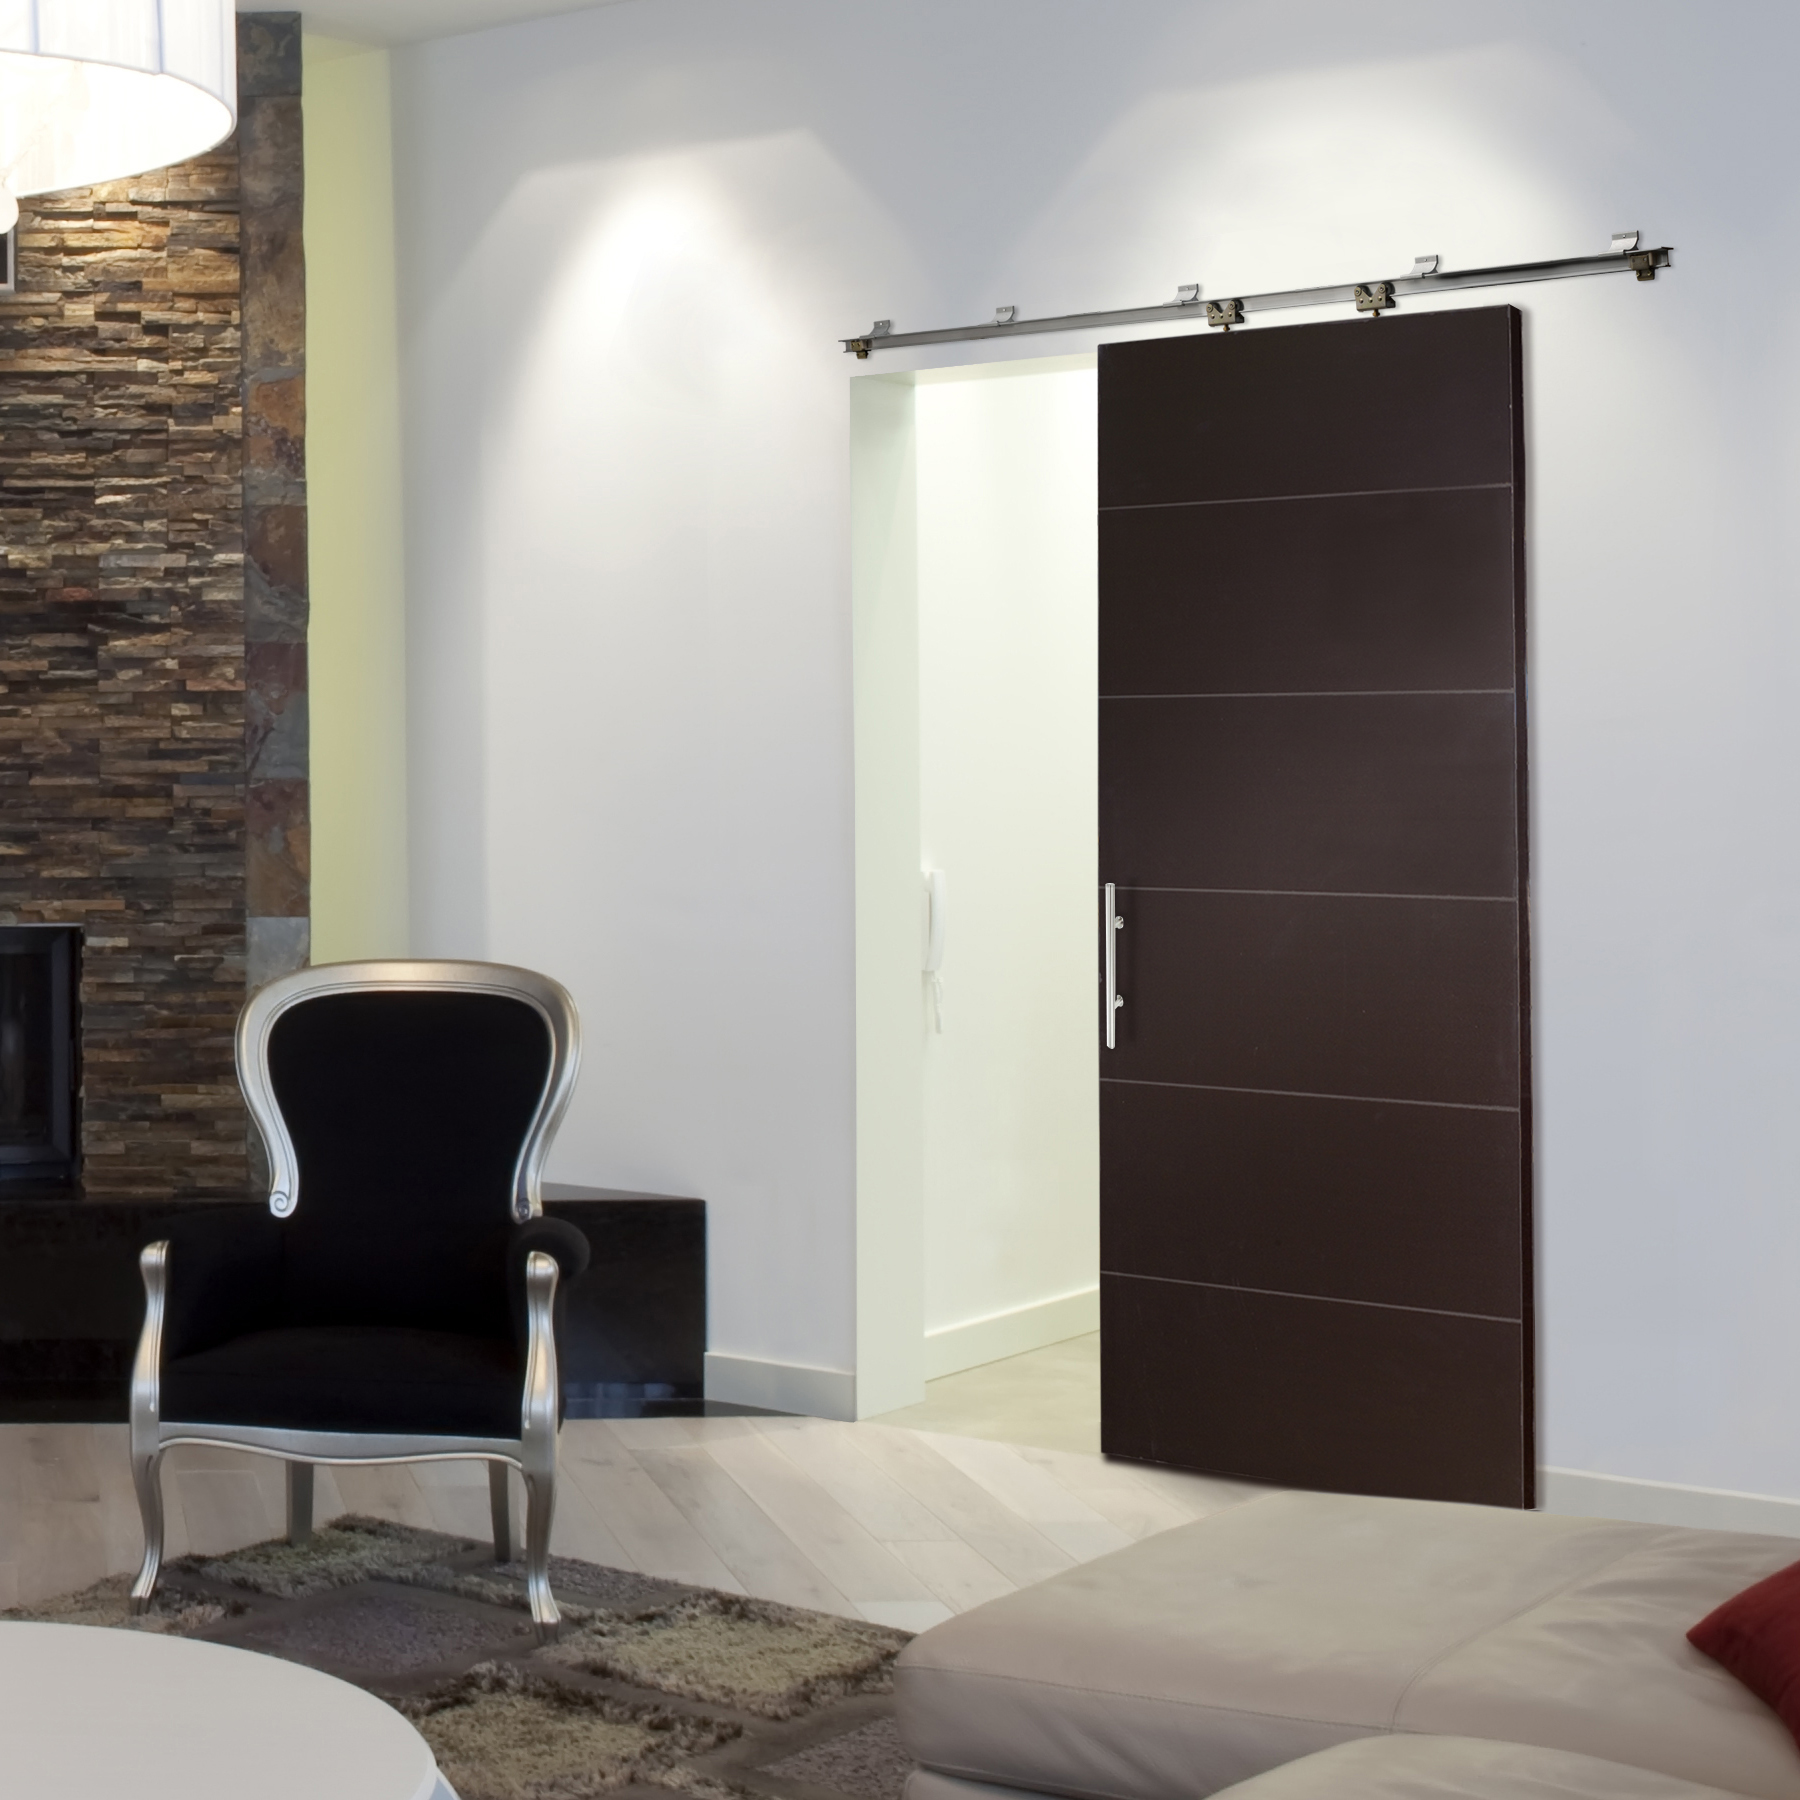 UK interior sliding folding doors are getting so popular that in a year or two they